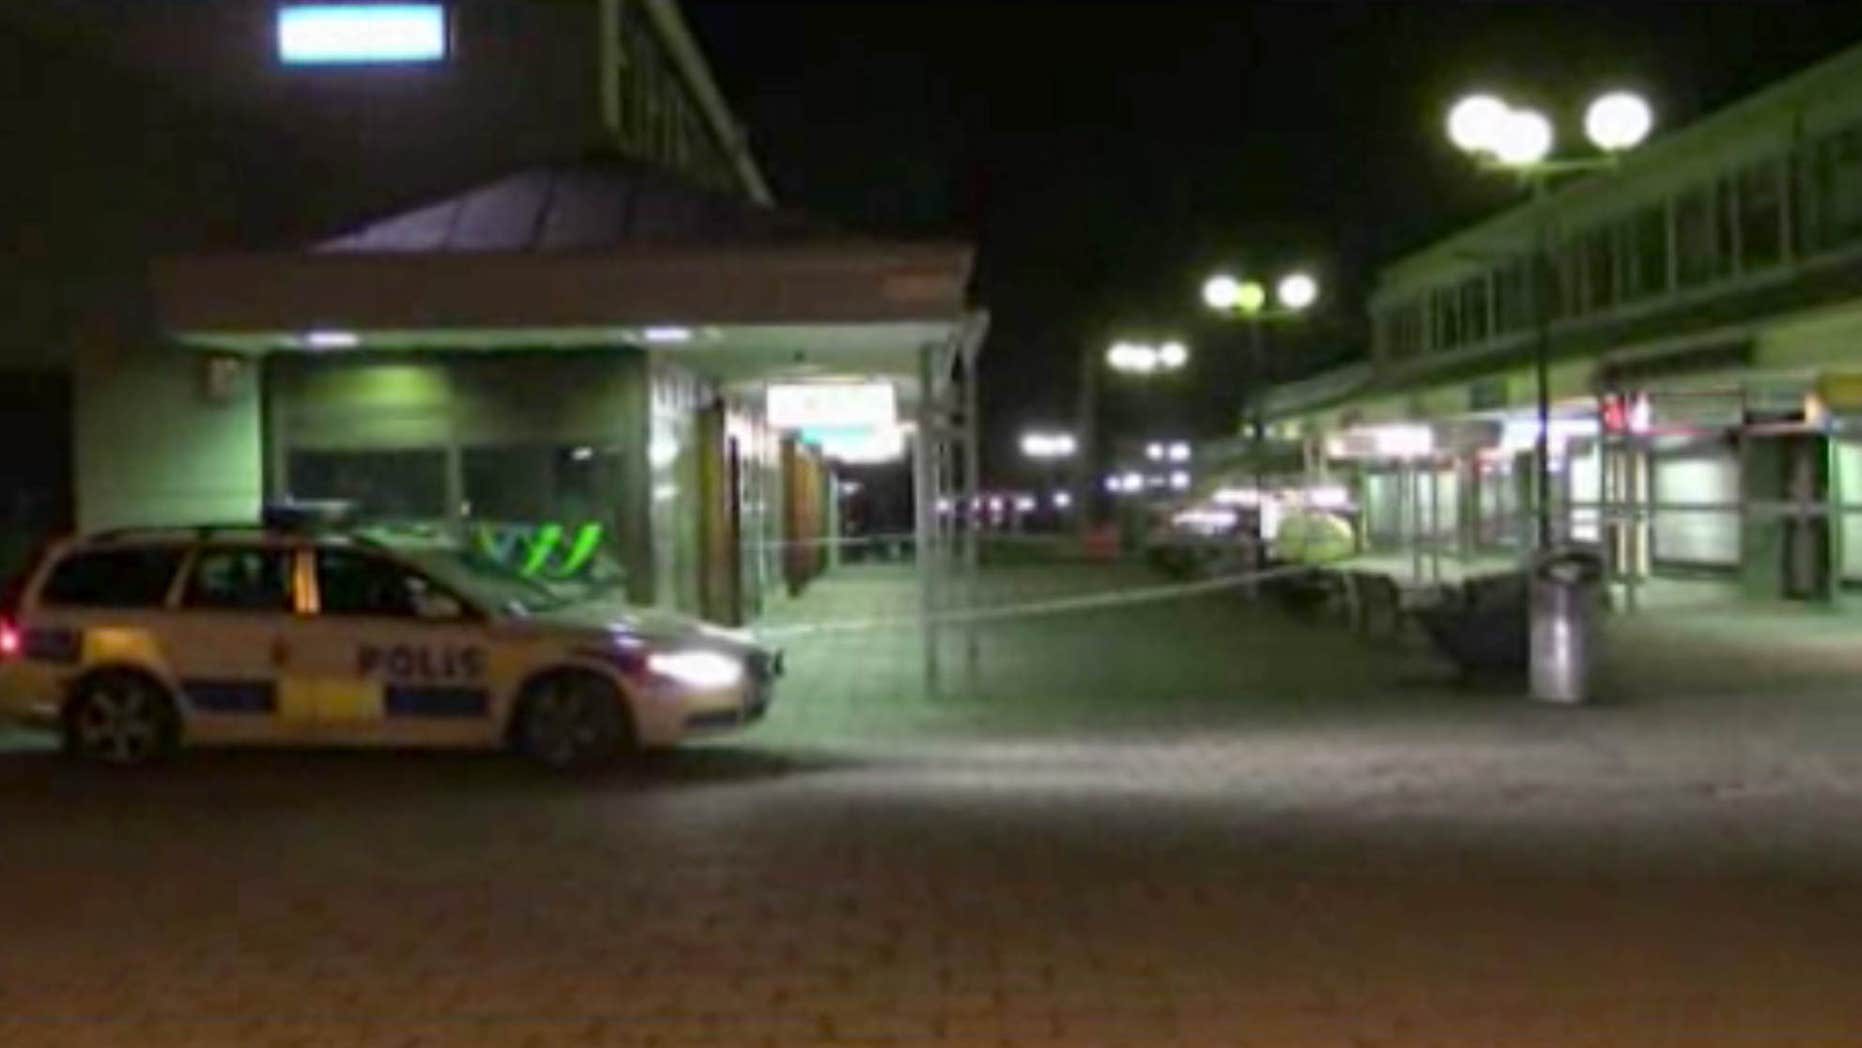 March 18, 2015: In this image from Swedish TV4 a police car sits near the Var Krog och Bar in the city of Goteborg.